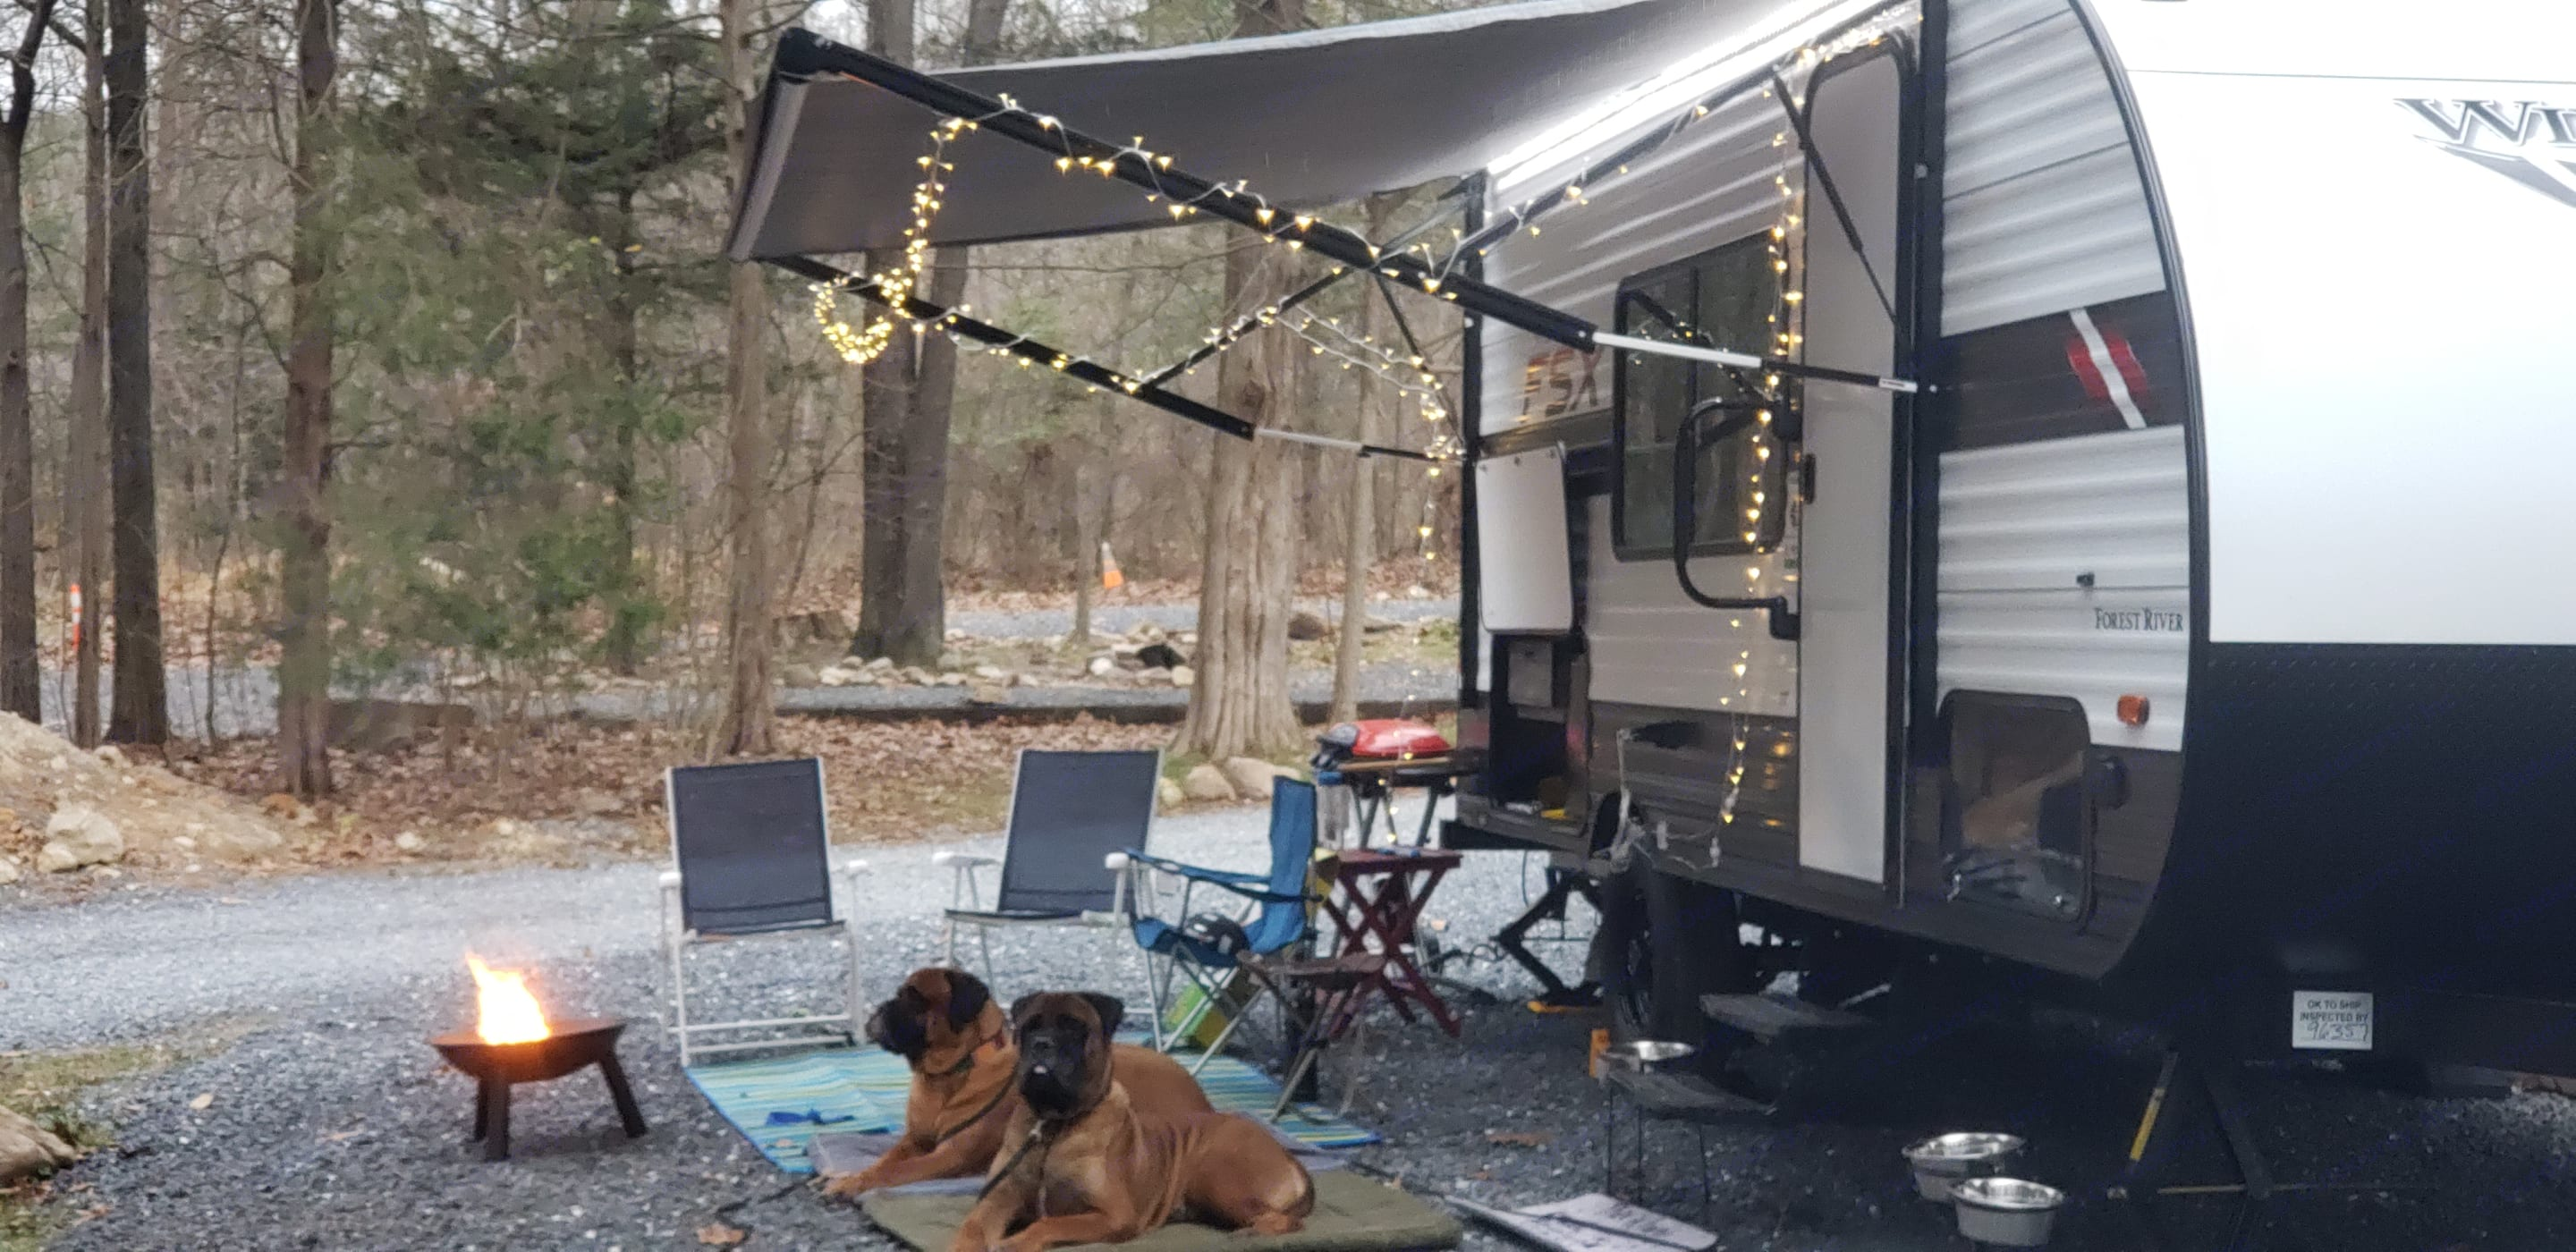 Fire Pit & Dogs. Forest River Wildwood 2021